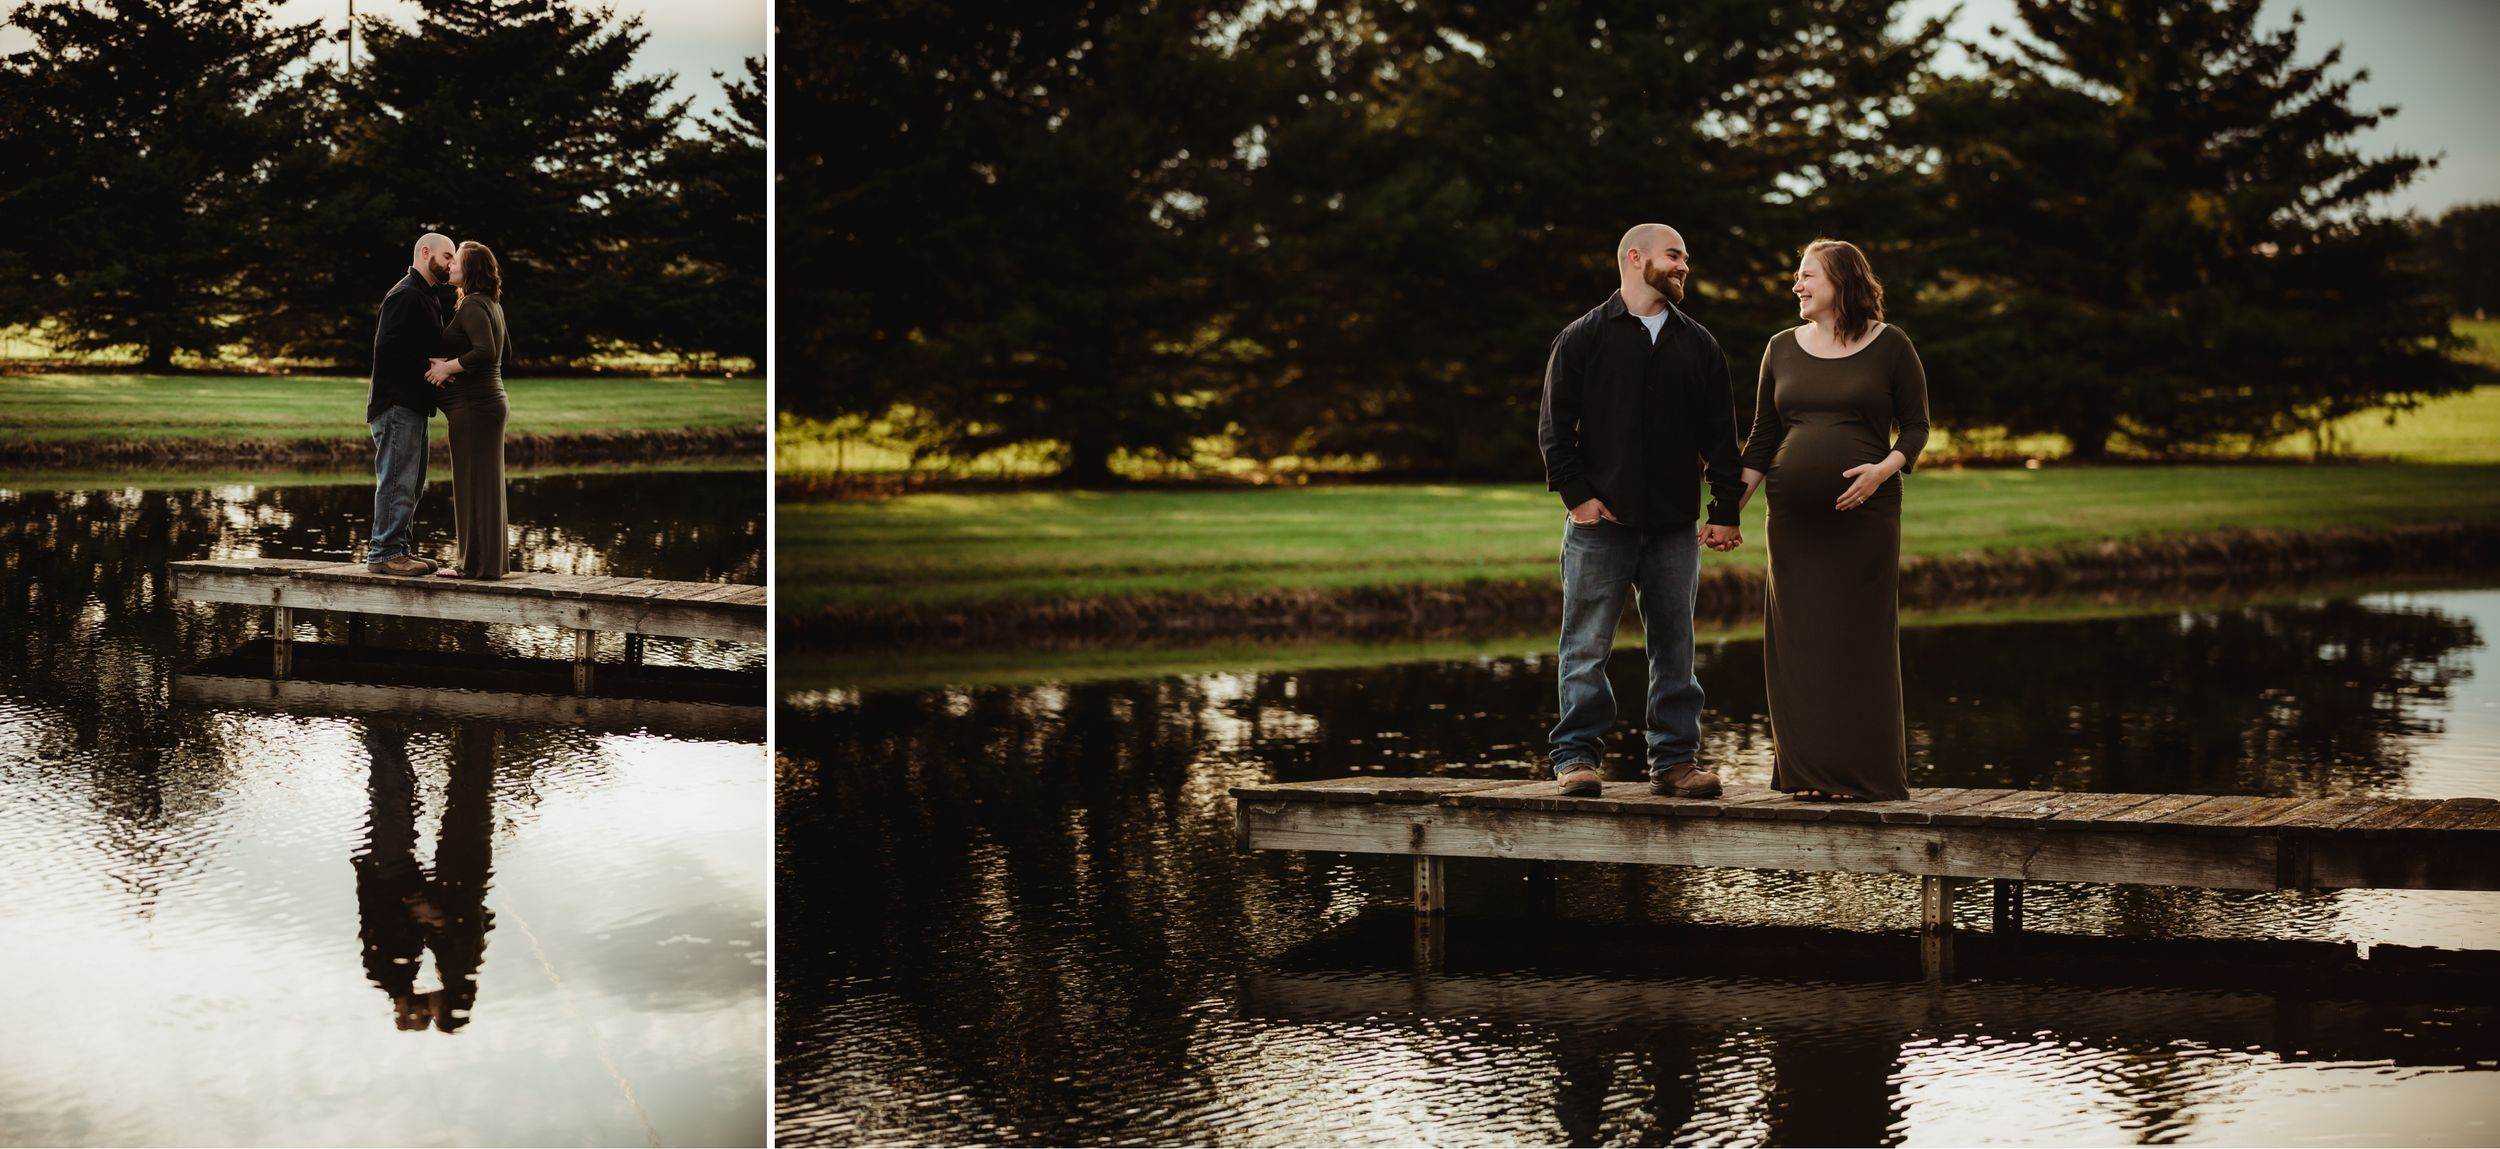 Pregnant woman and her husband standing on a dock together in a large pond.